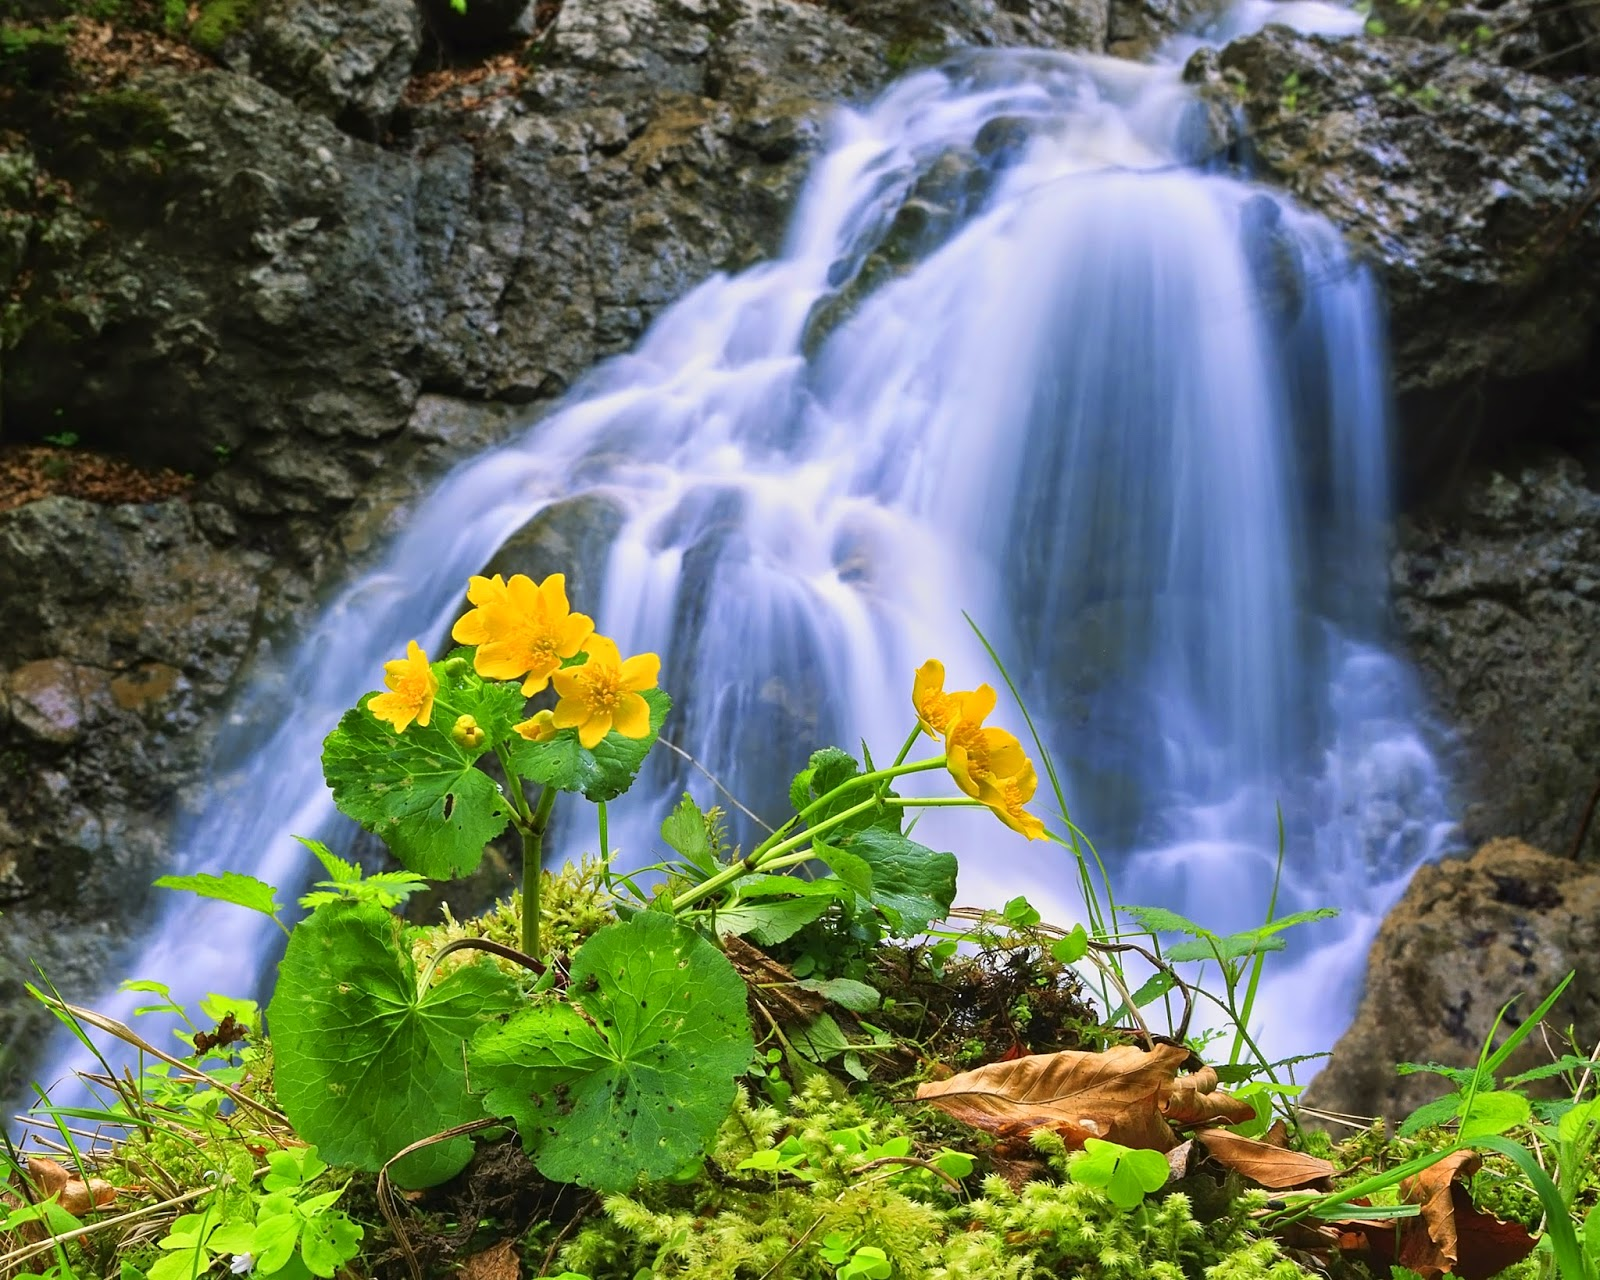 beautiful nature images: waterfall with flowers | beautiful nature